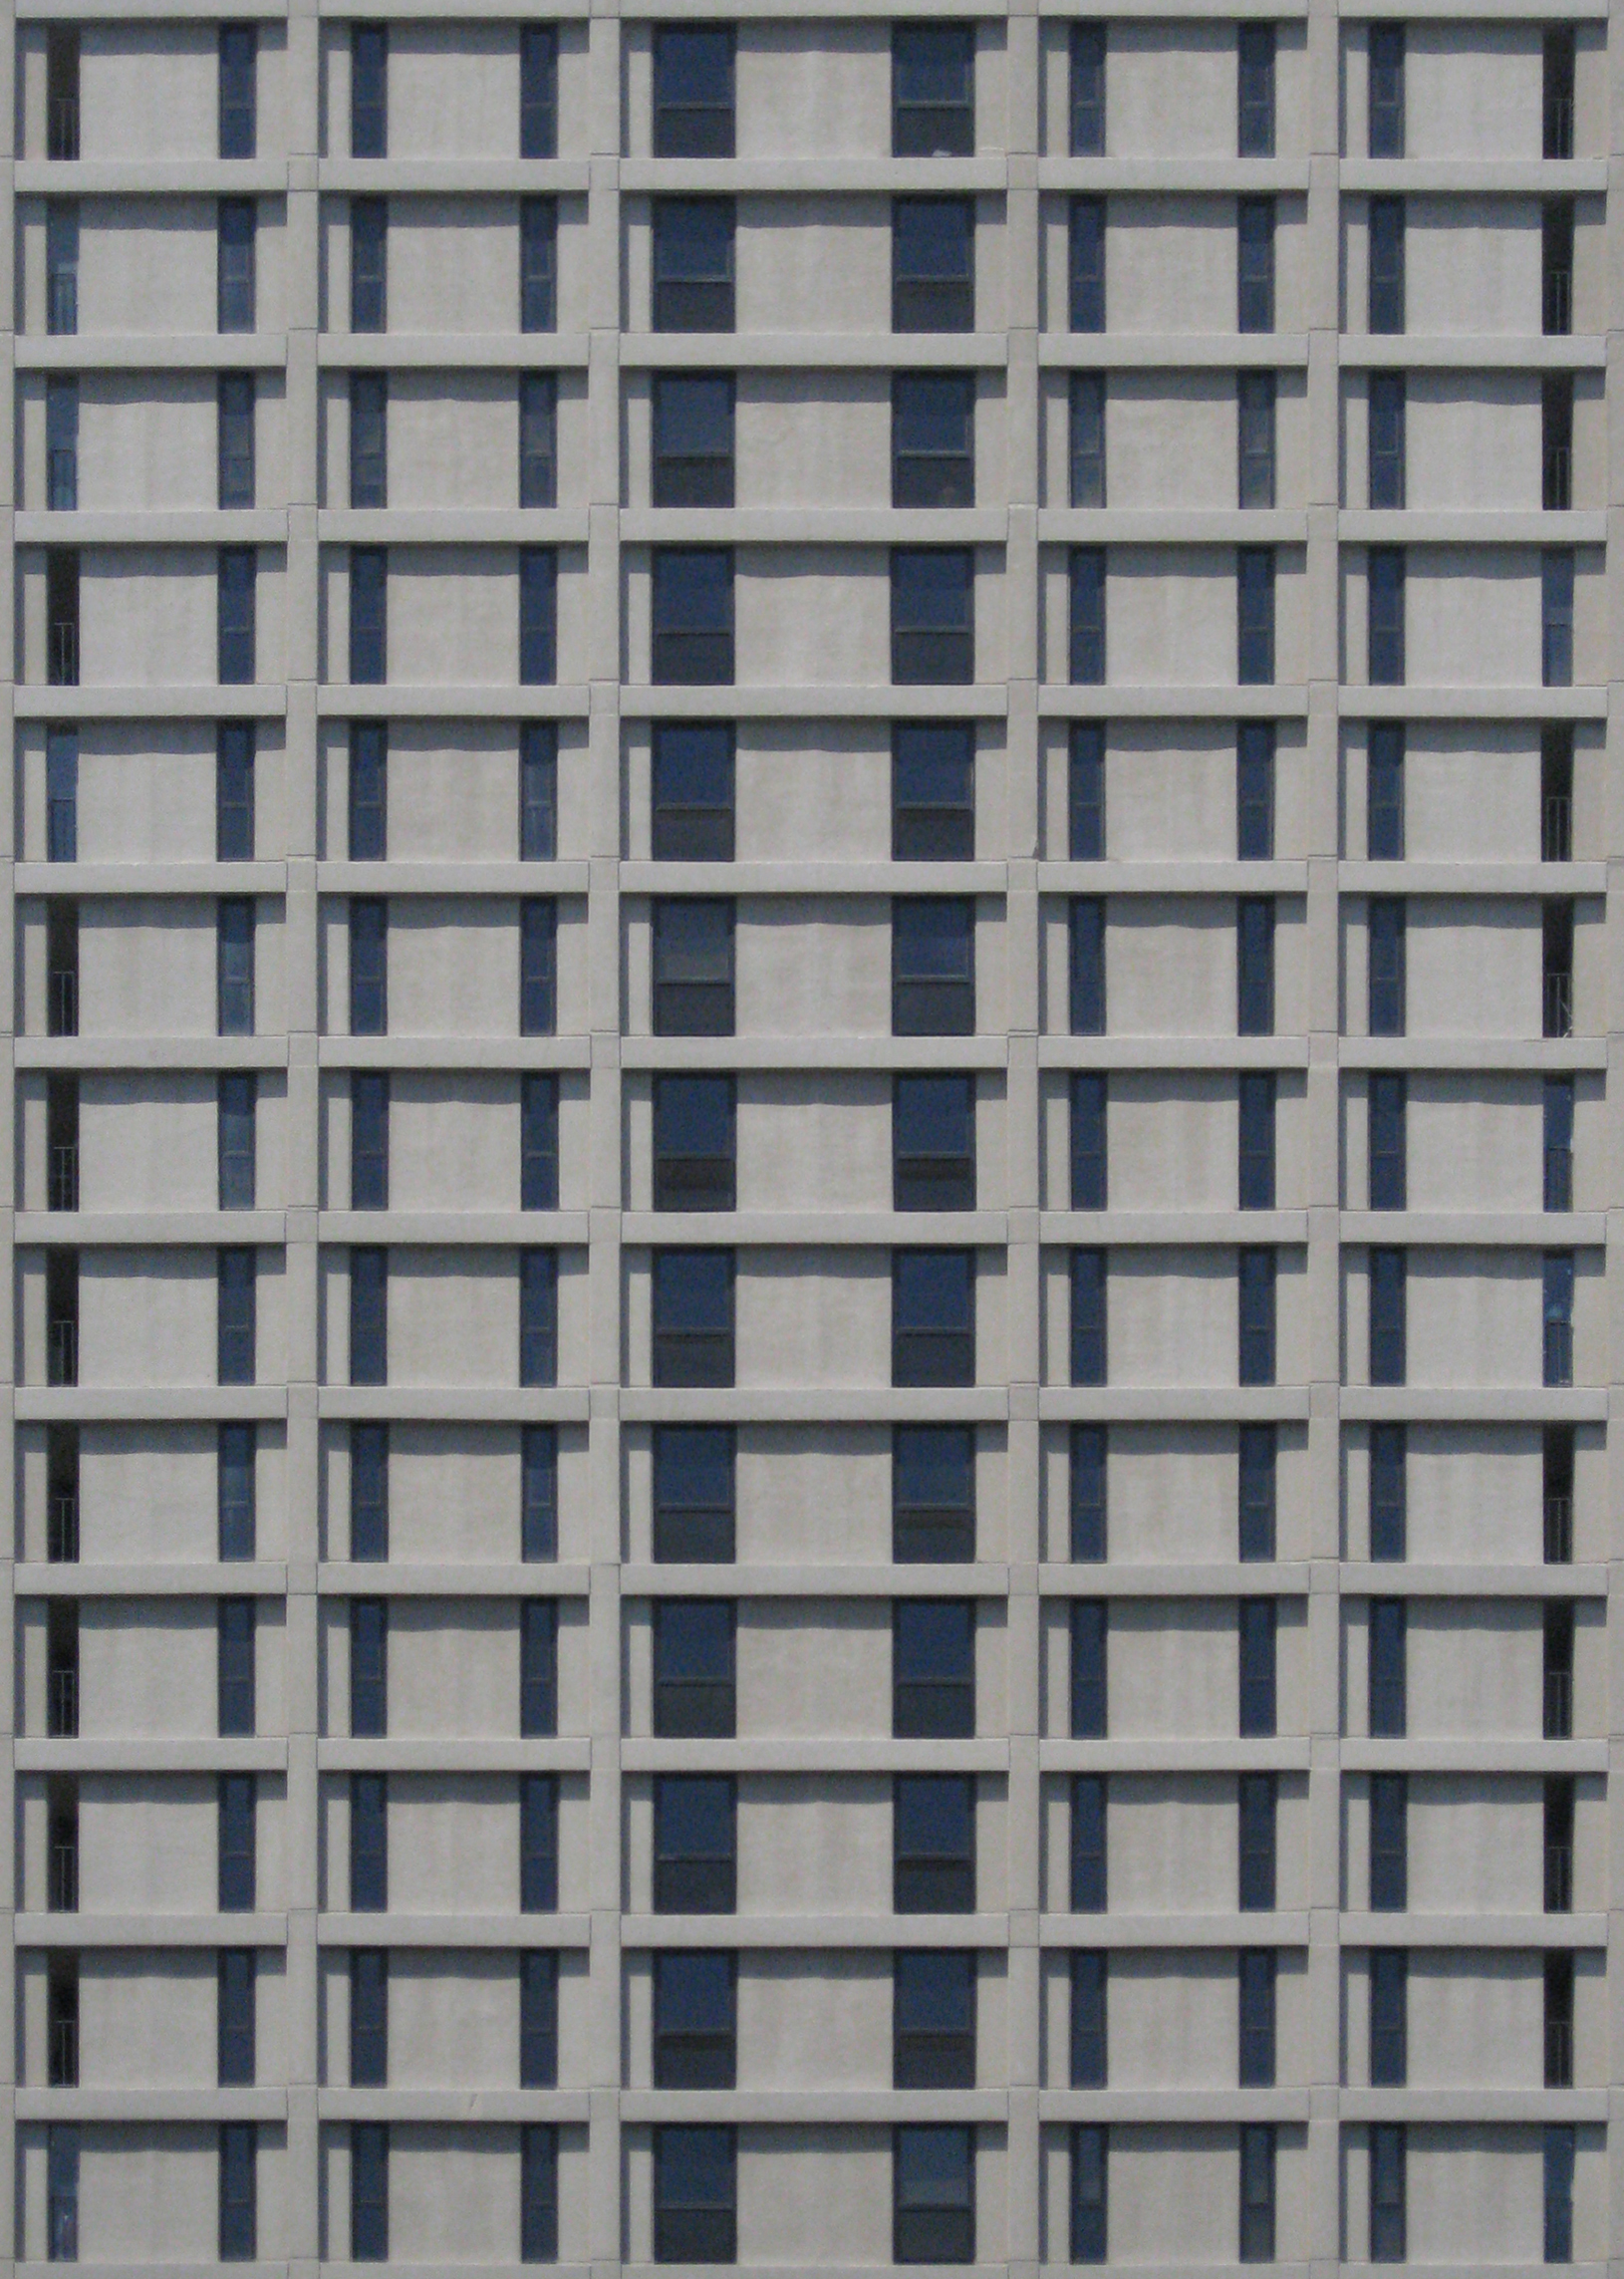 city building textures - photo #8